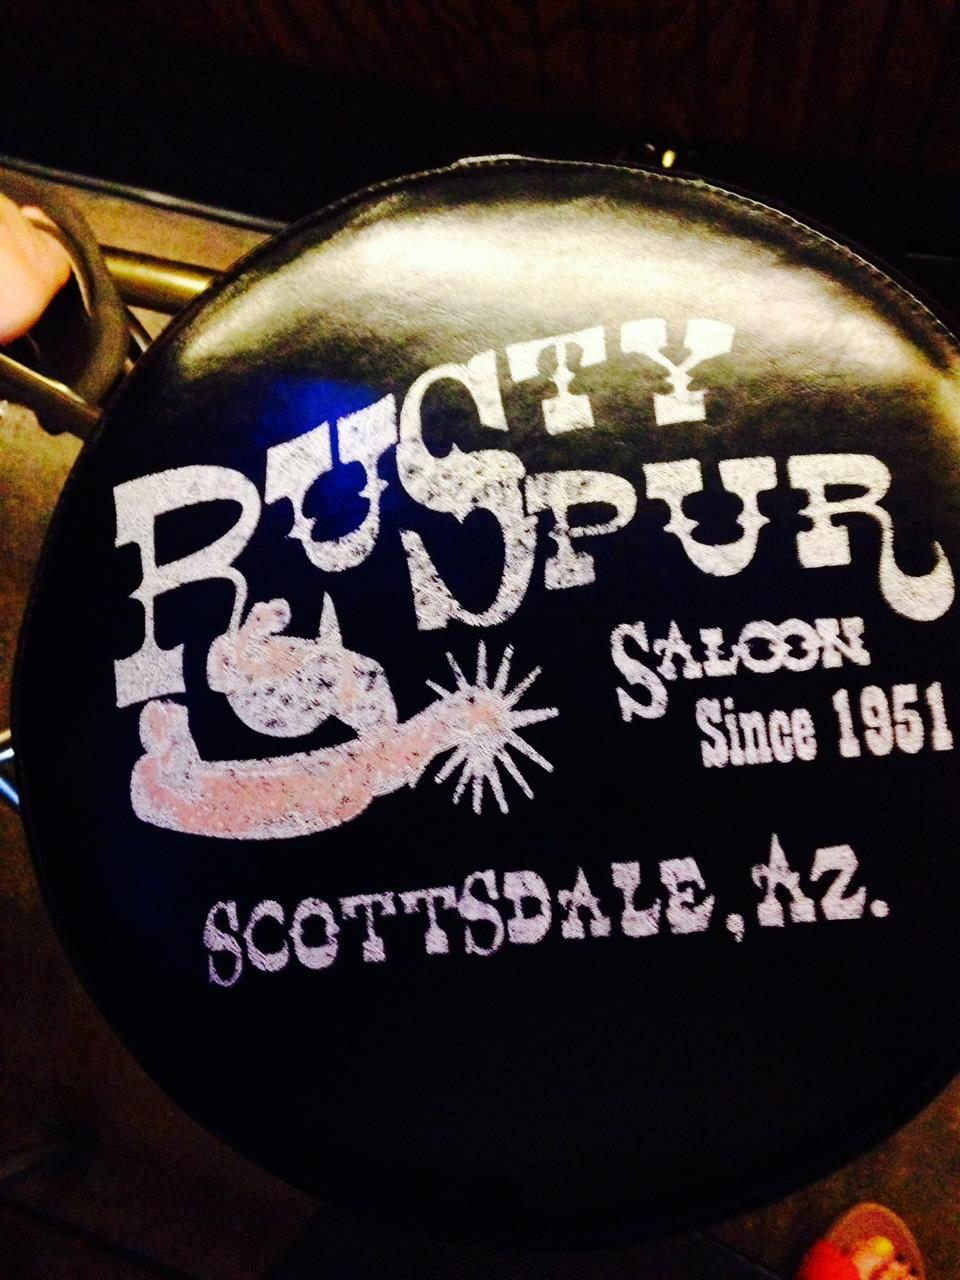 The Rusty Spur is a small quaint bar with live music in downtown Scottsdale, AZ.